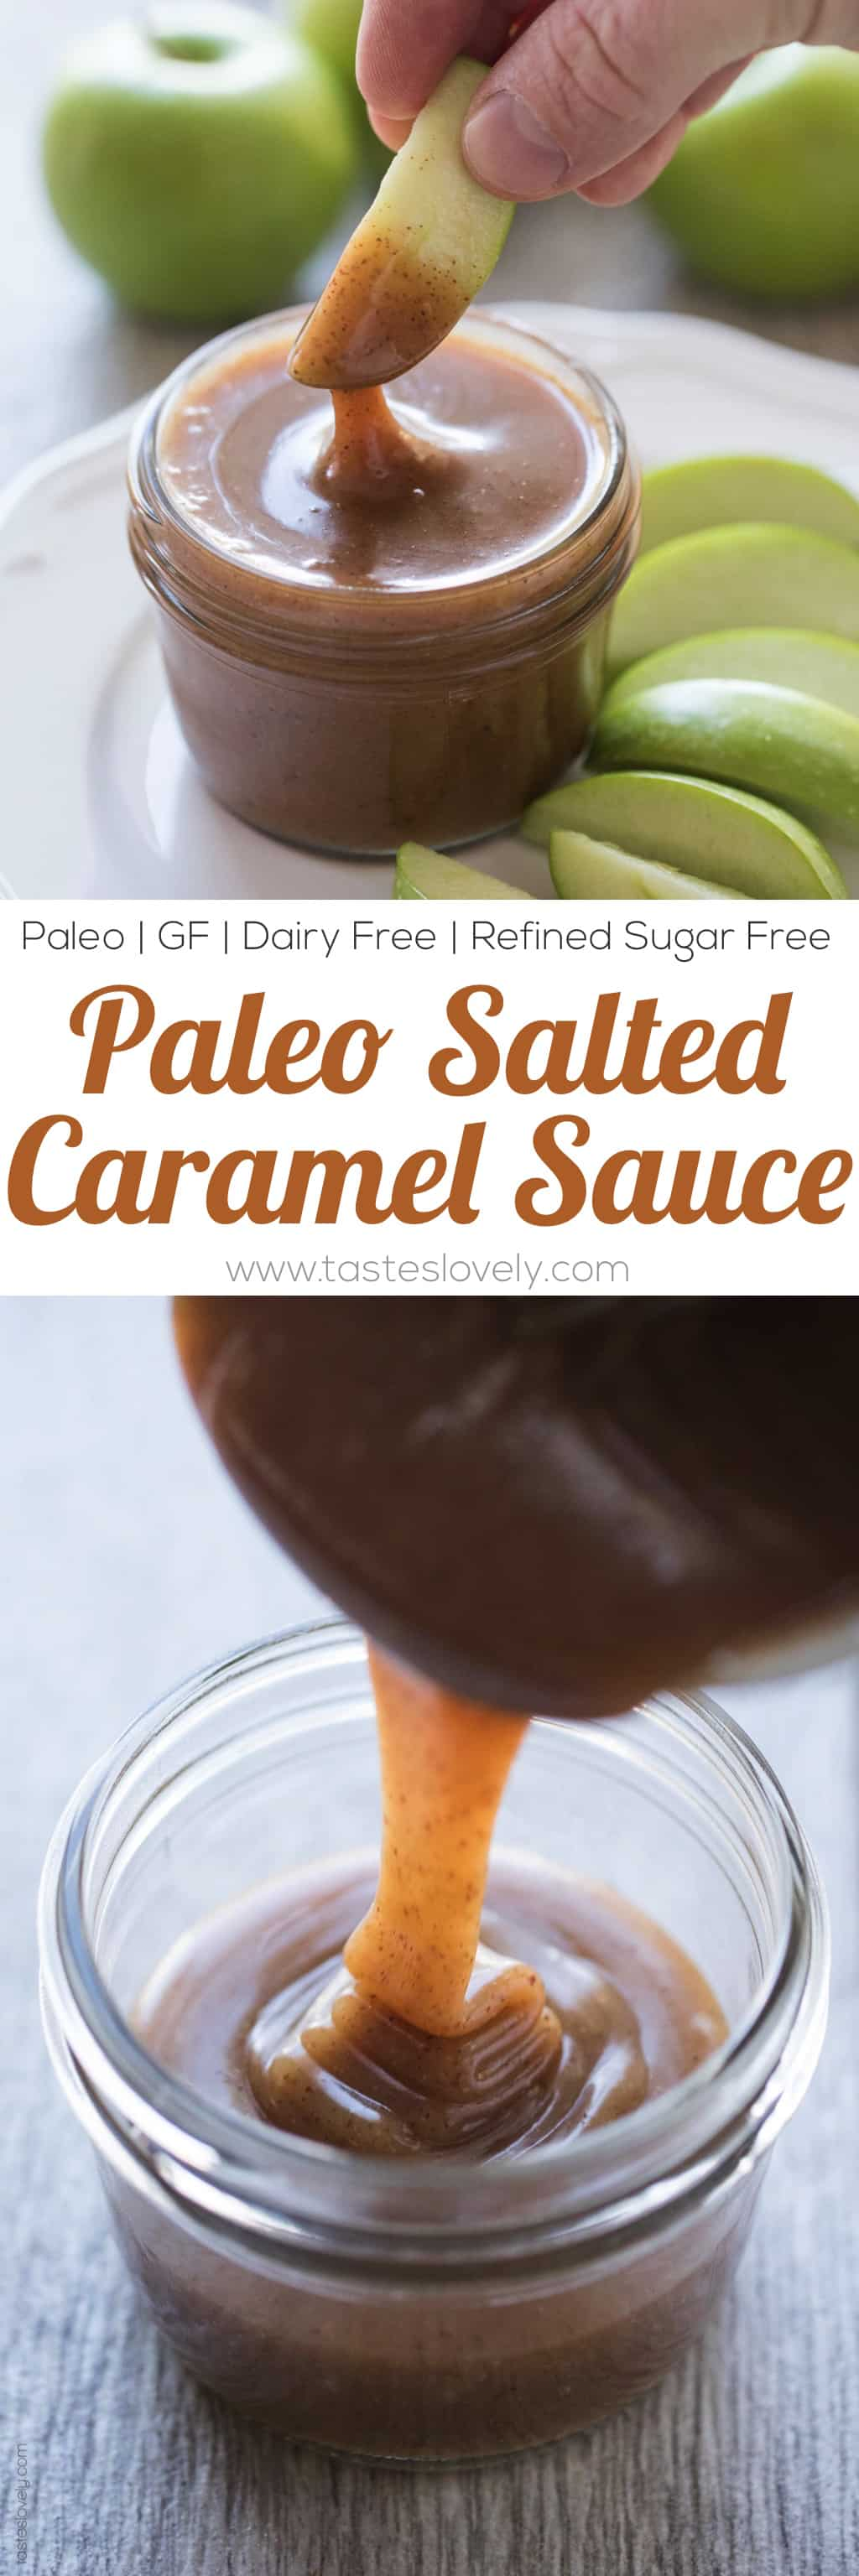 Paleo Salted Caramel Sauce - a 3 minute microwave caramel sauce that is paleo, dairy free, refined sugar free, gluten free and vegan!